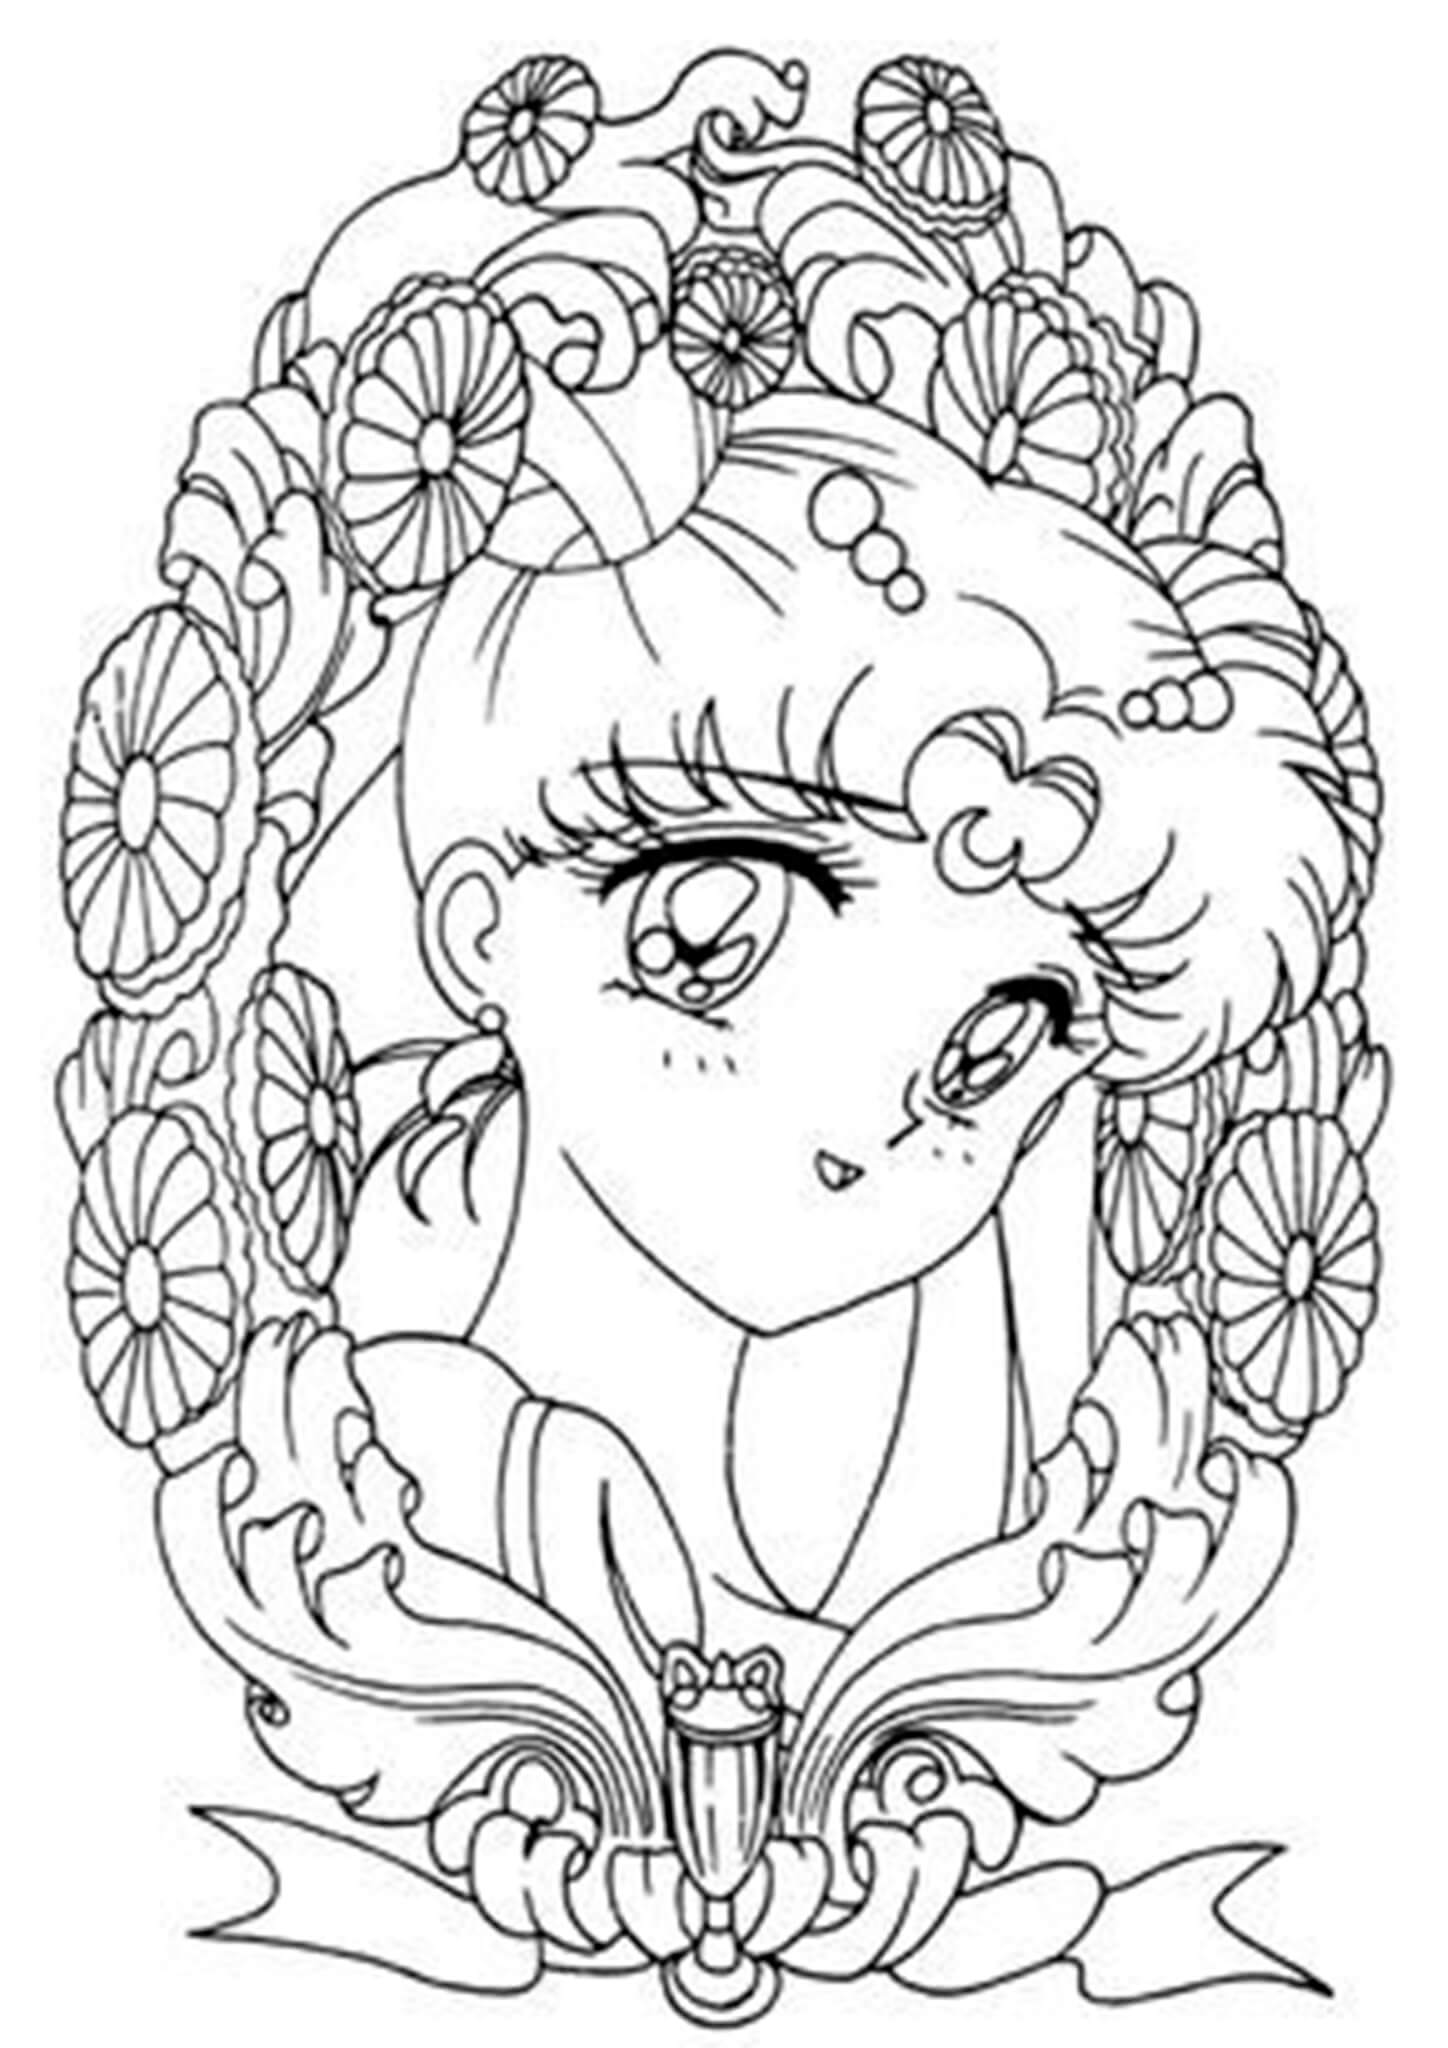 Free & Easy To Print Sailor Moon Coloring Pages - Tulamama